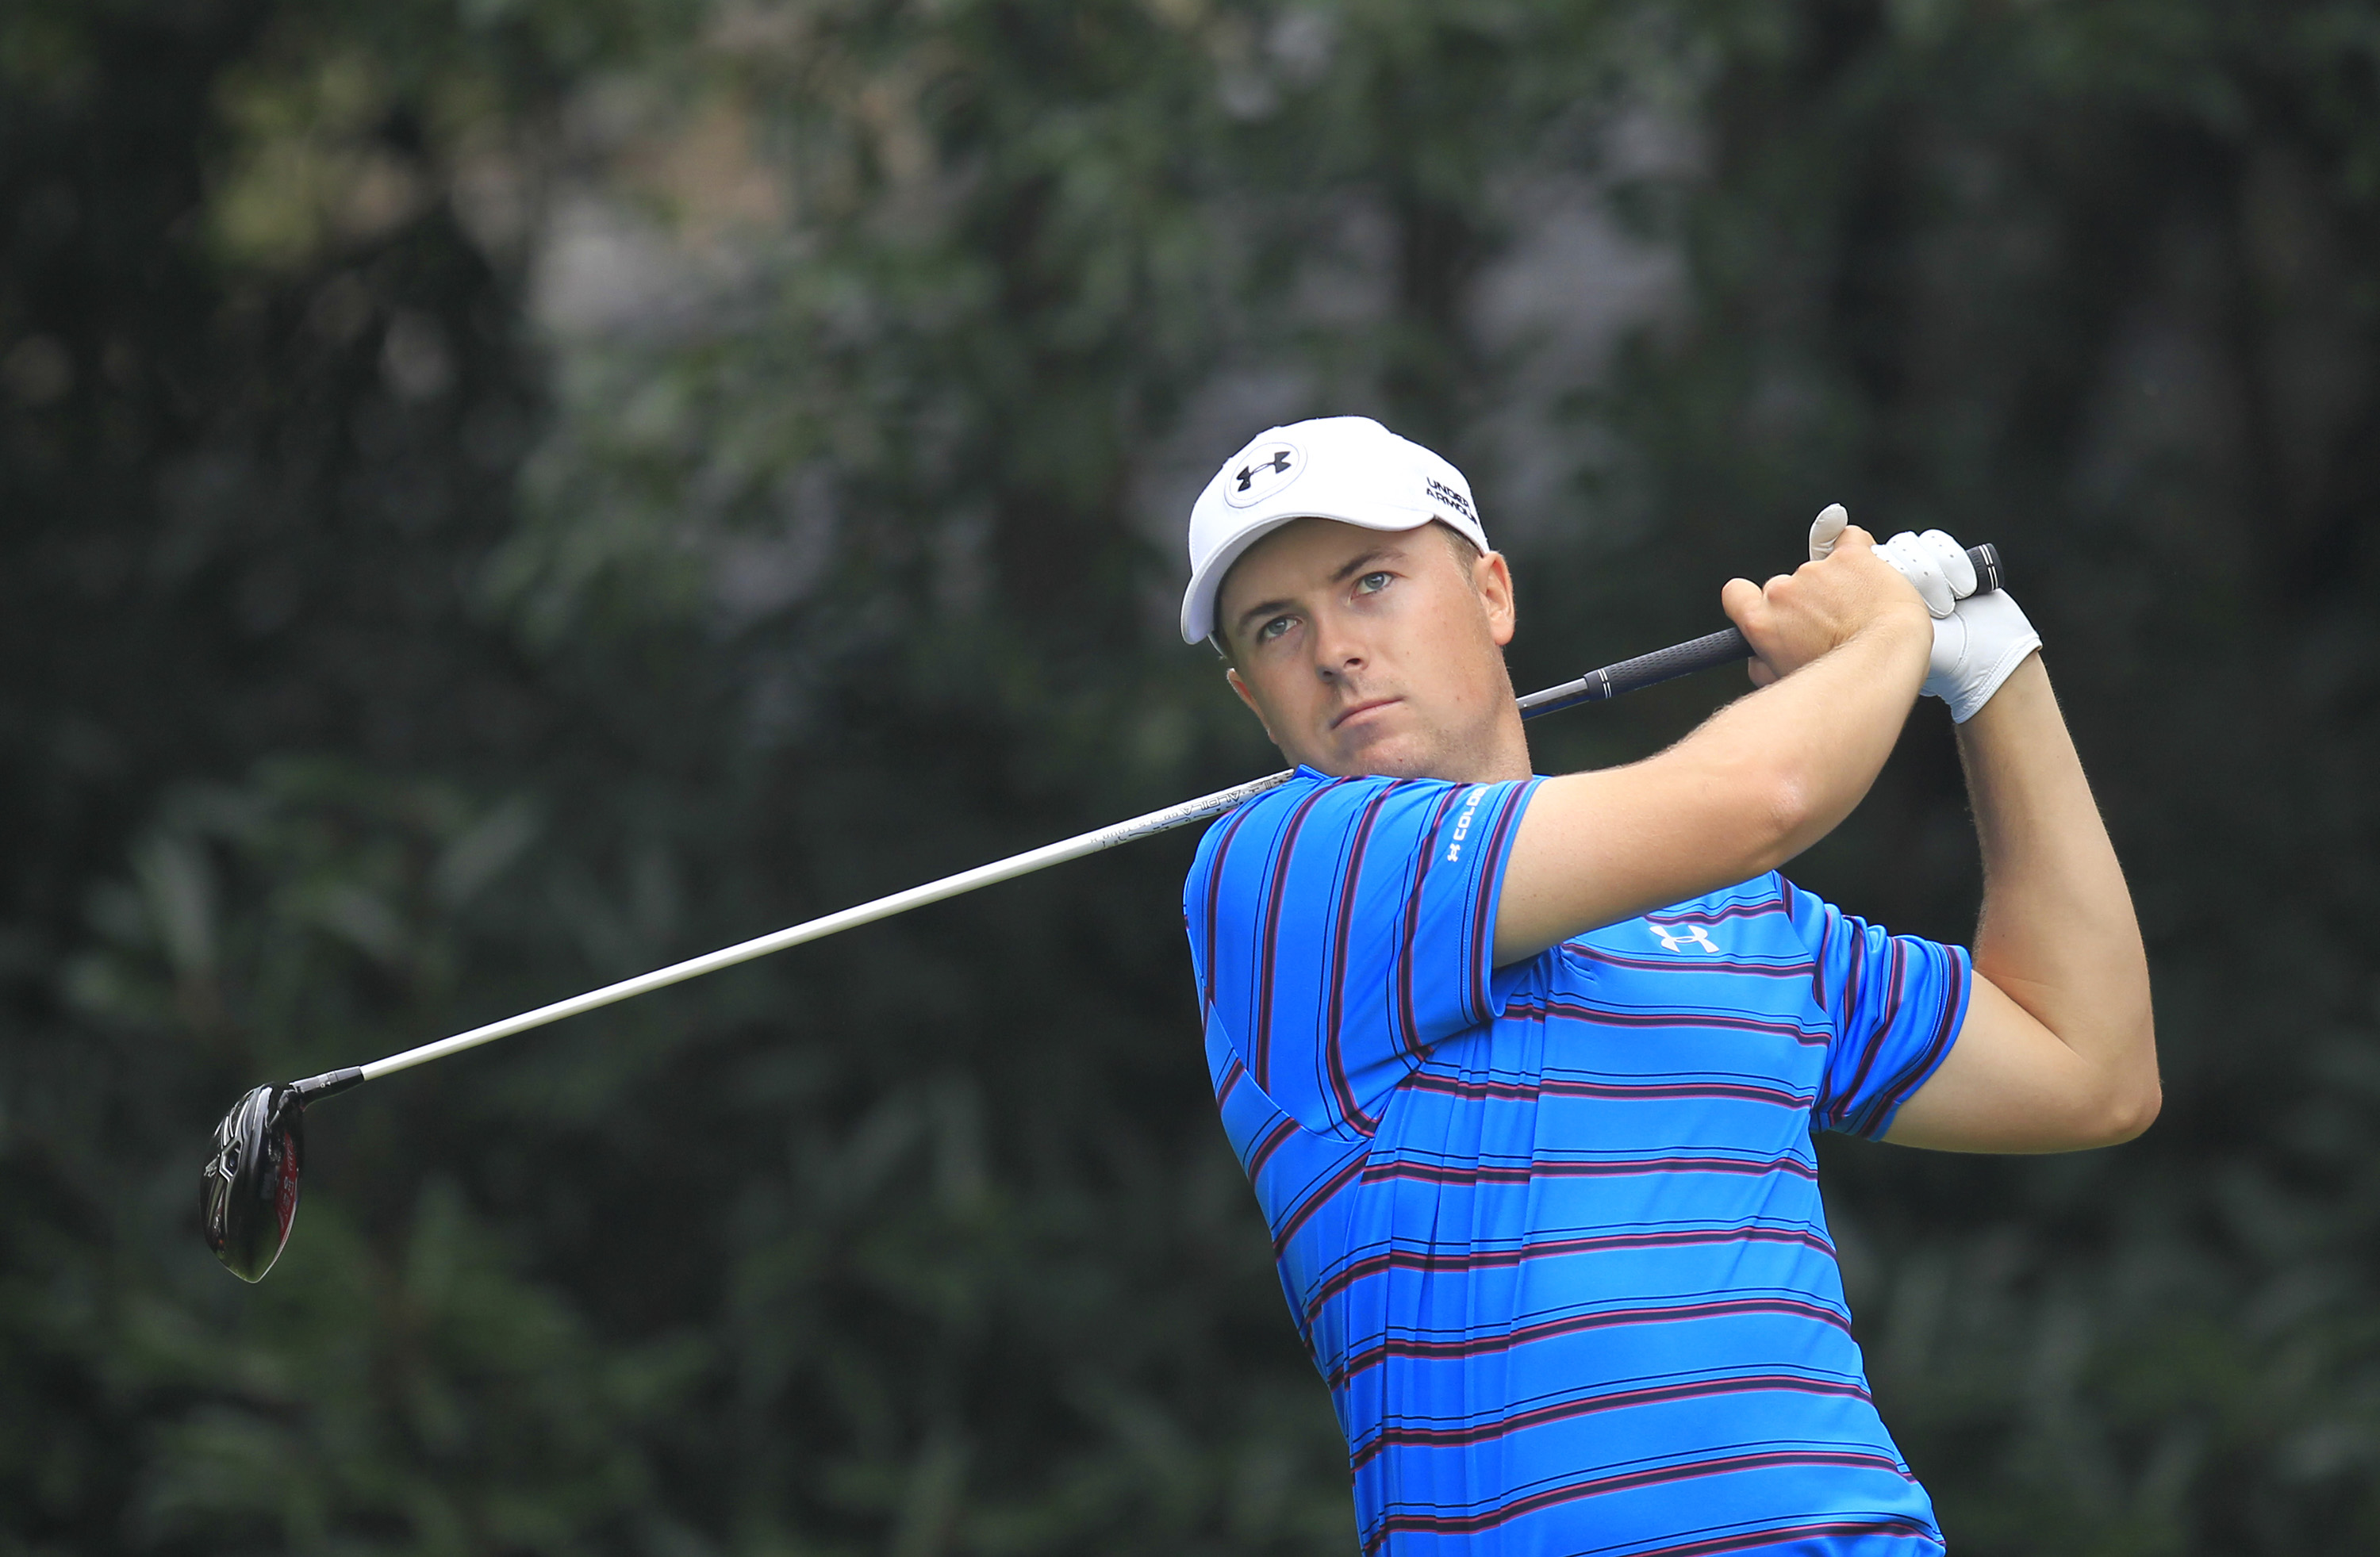 Jordan Spieth of the United States tees off on the 5th hole during the first round of the HSBC Champions golf tournament at the Sheshan International Golf Club in Shanghai, China Thursday, Nov. 5, 2015. (AP Photo)